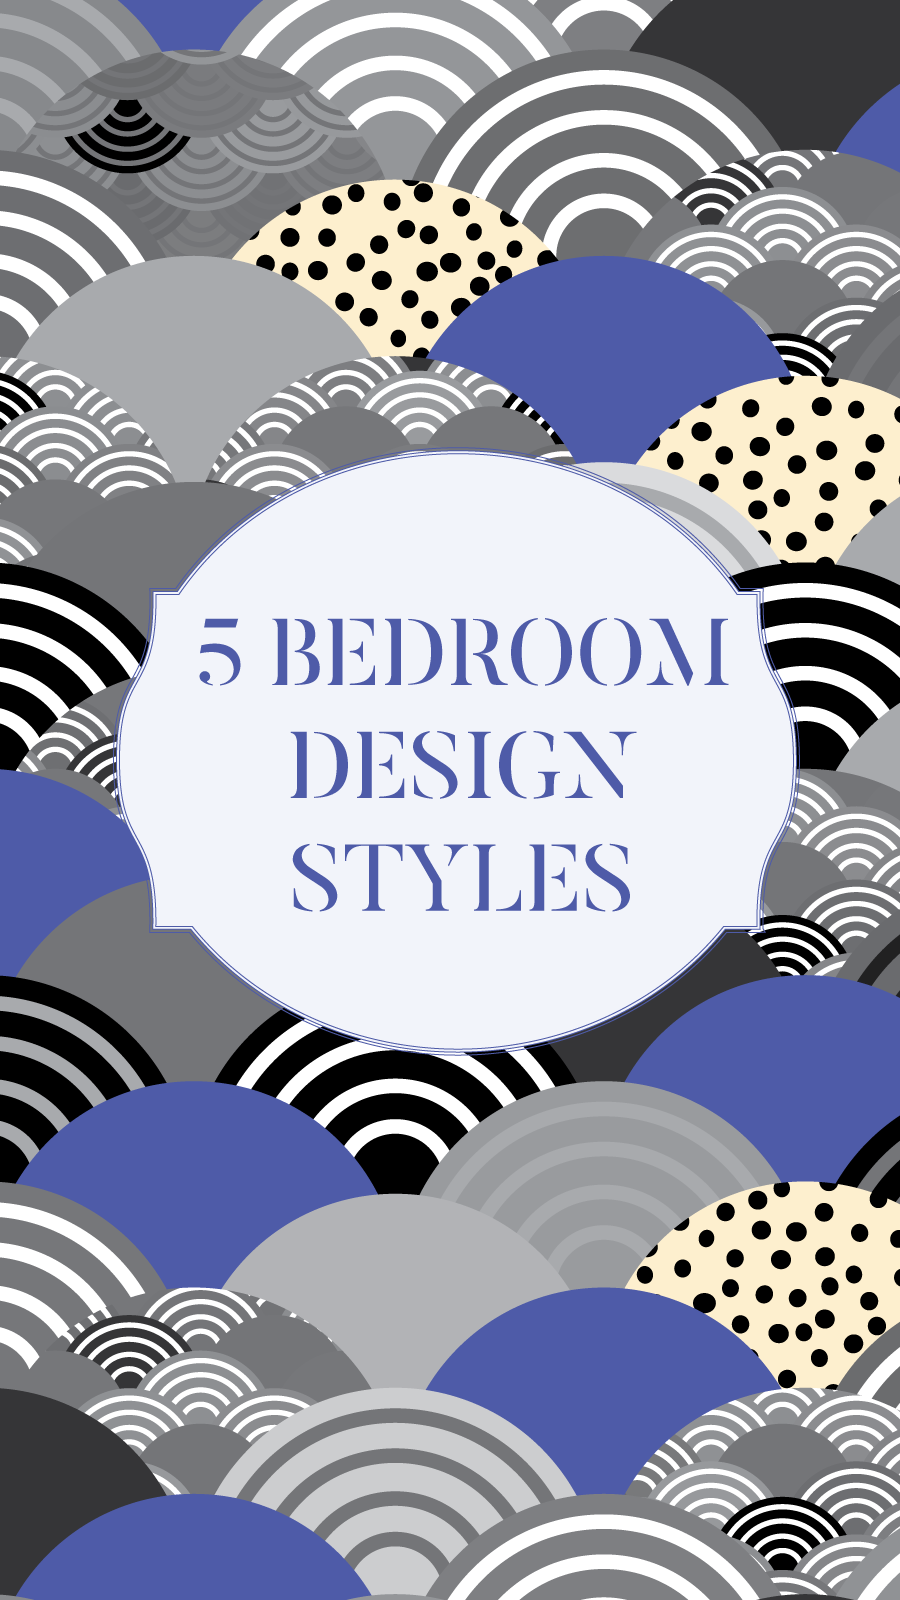 5 Bedroom Decor Styles - Tips & Tricks to Help Define Your Bedroom Design - FlaxLinen.com